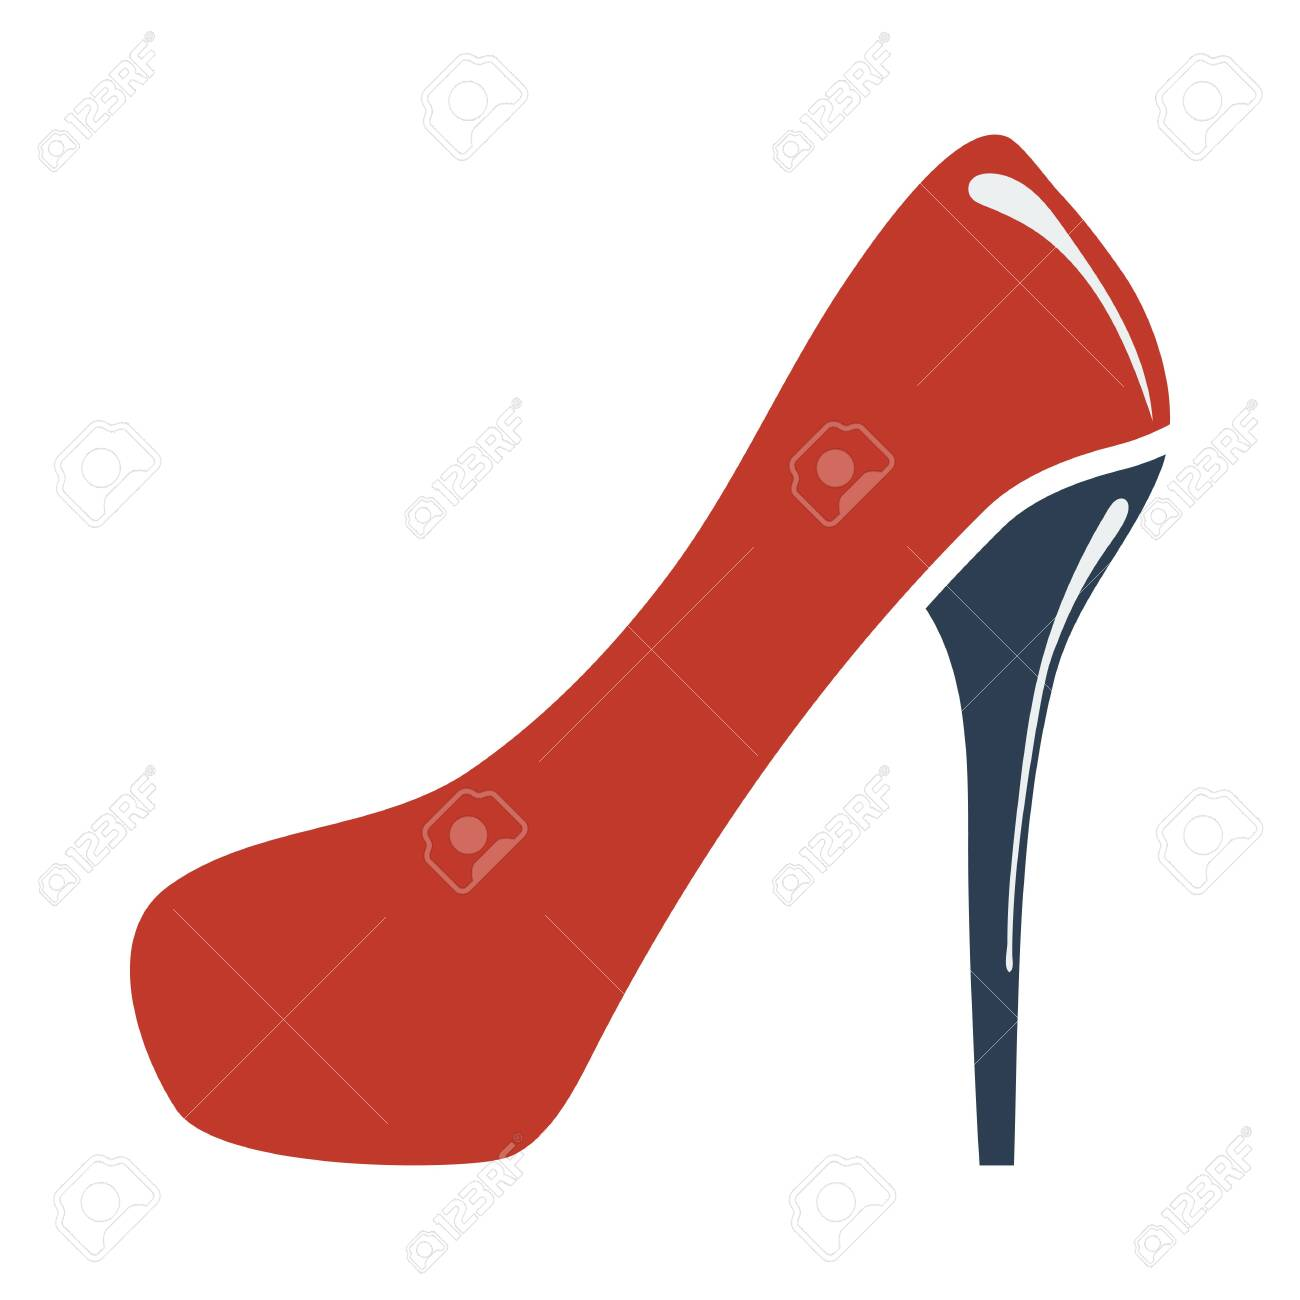 Female Shoe With High Heel Icon. Flat Color Design. Vector Illustration. - 154512993